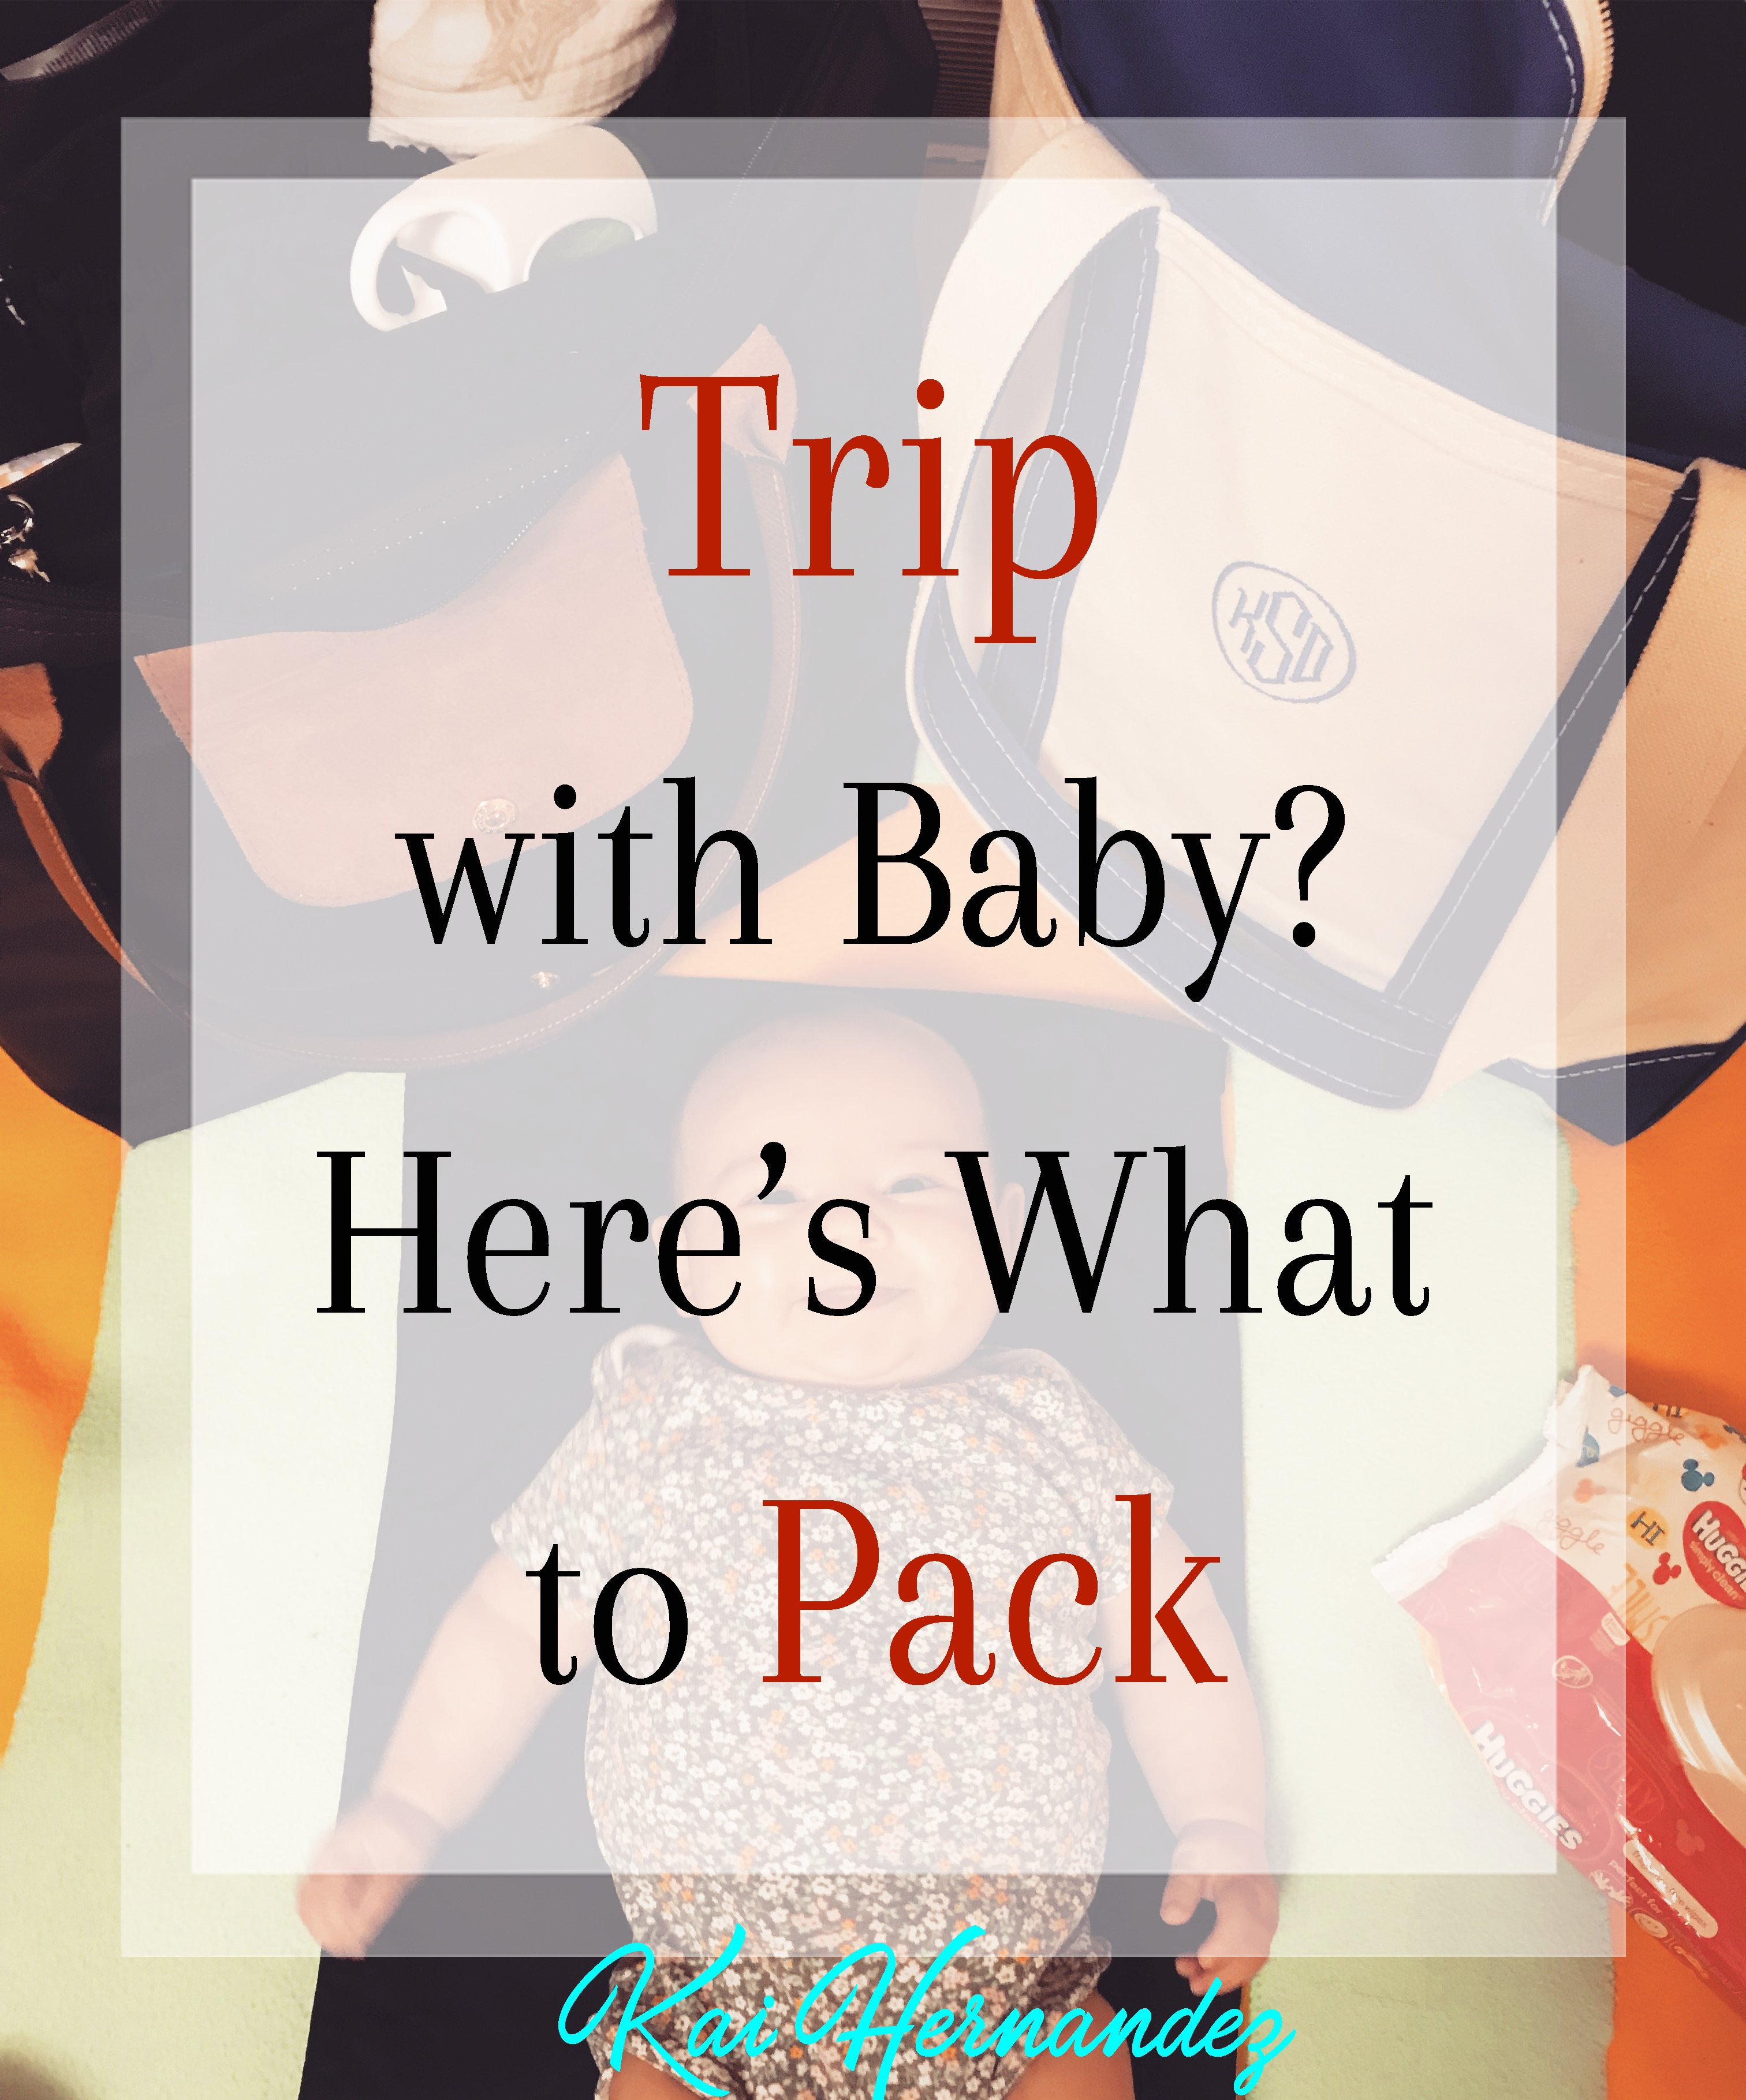 Taking a Trip with Baby? Here's What to Pack